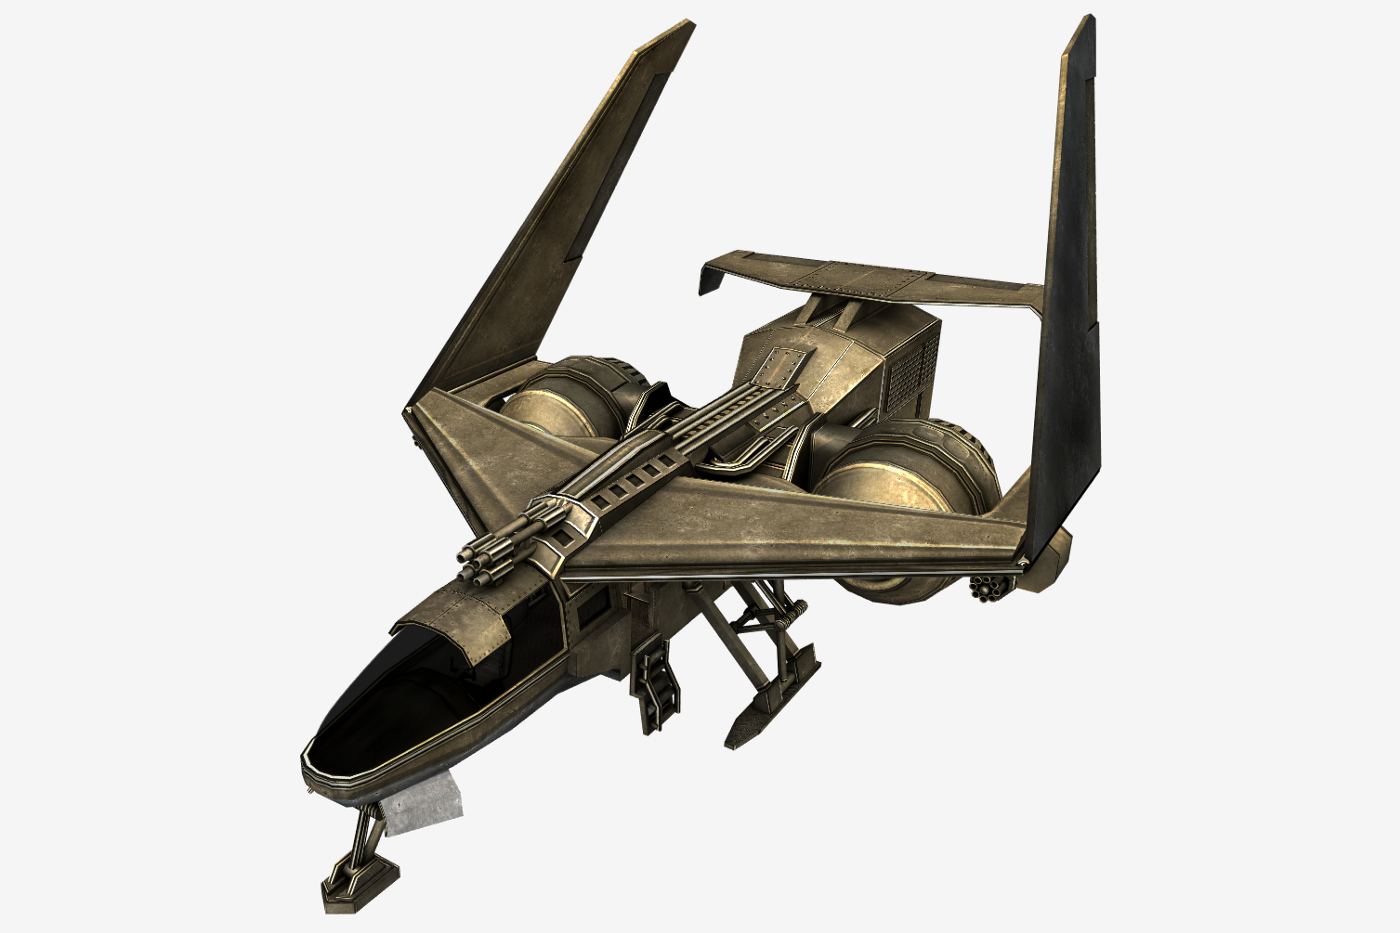 Fig. 1. OBJ format is widespread in the 3D graphics space, so it is often used for digital art assets.